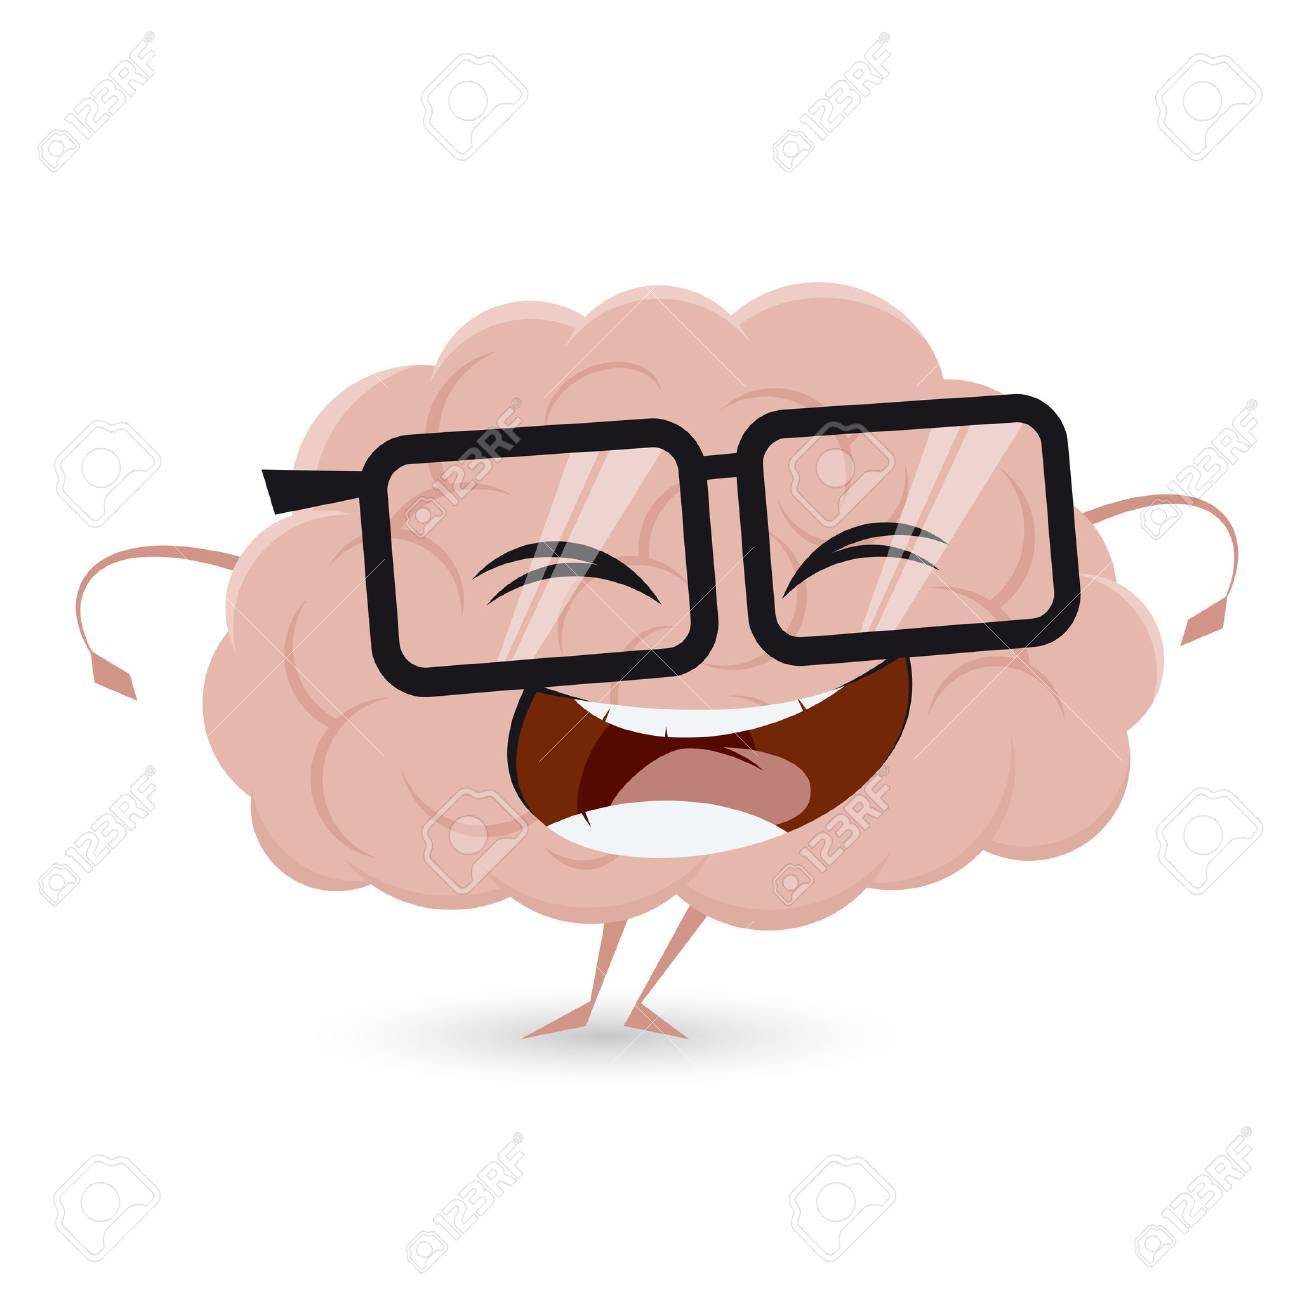 Cartoon brain clipart free » Clipart Portal.